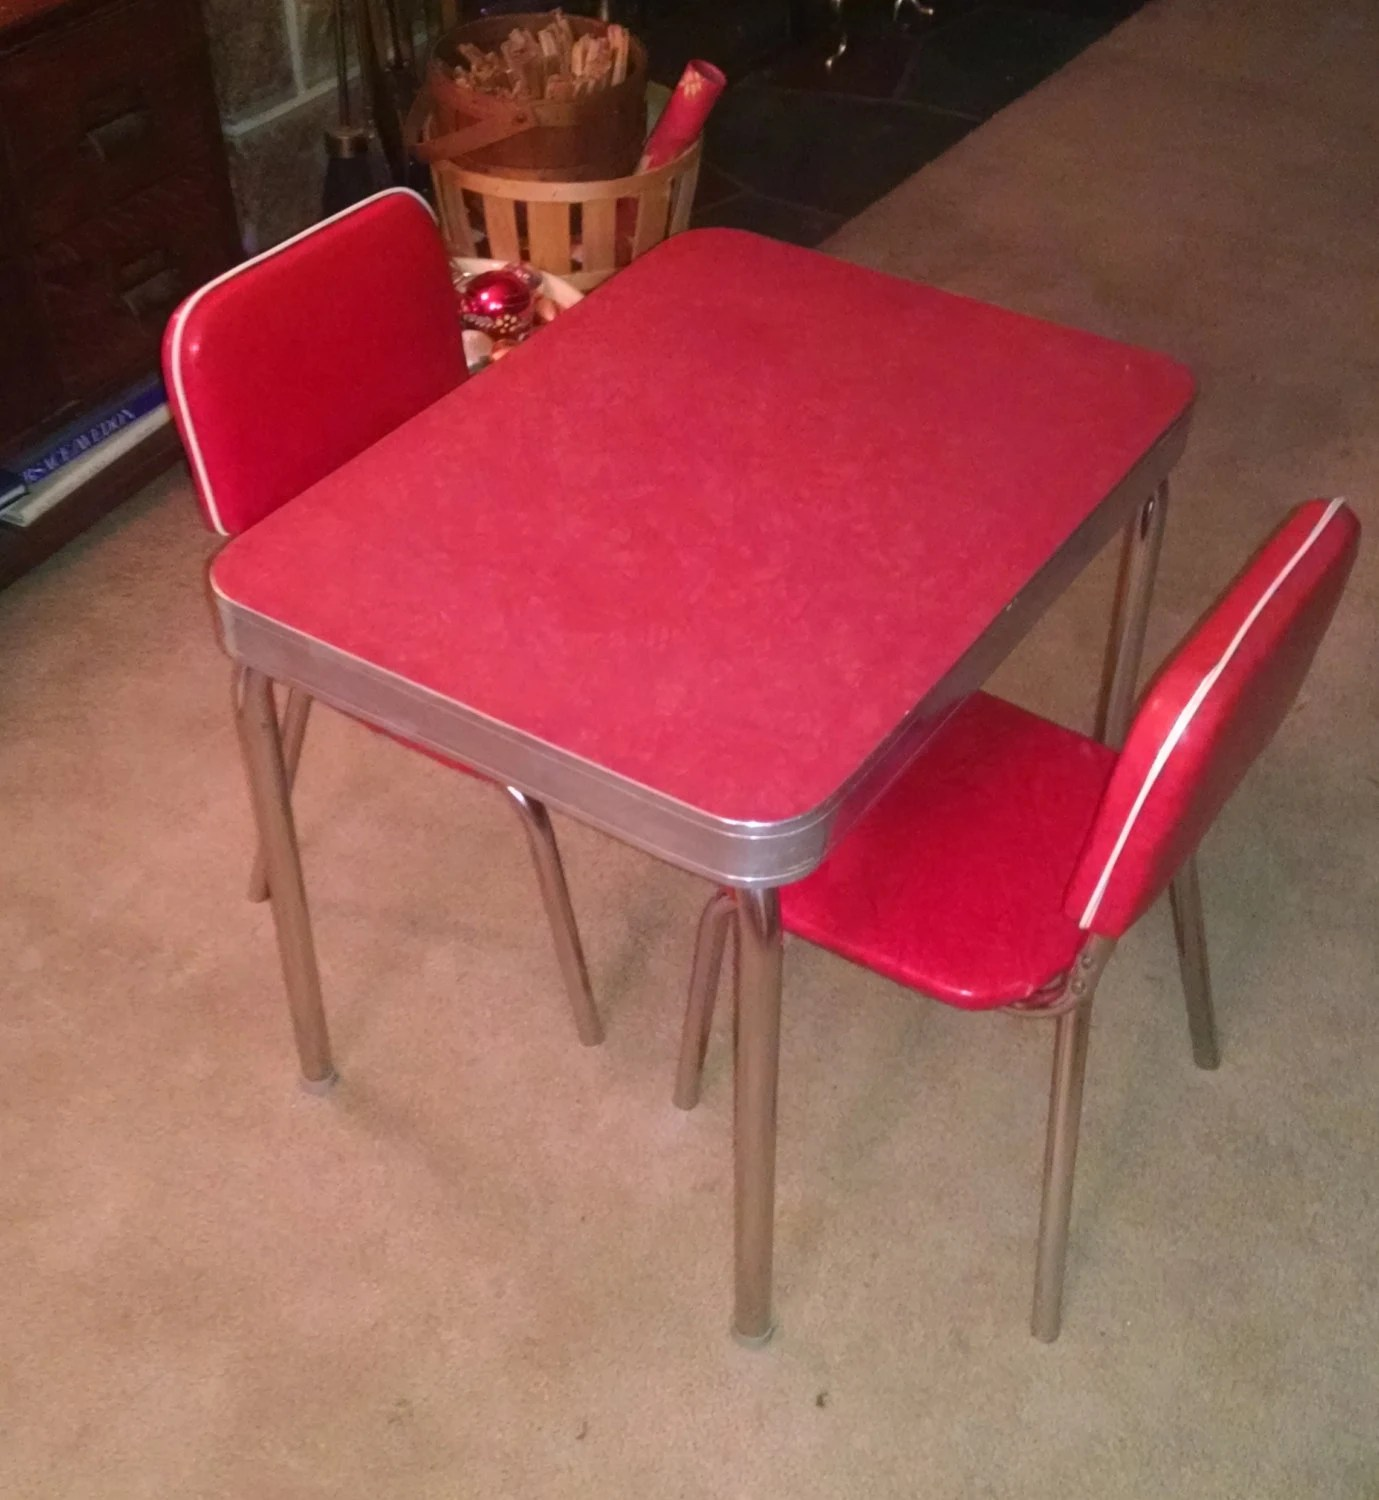 Formica Table And Chairs 1950 39s Child Size Retro Vintage Red Formica Kitchen Table